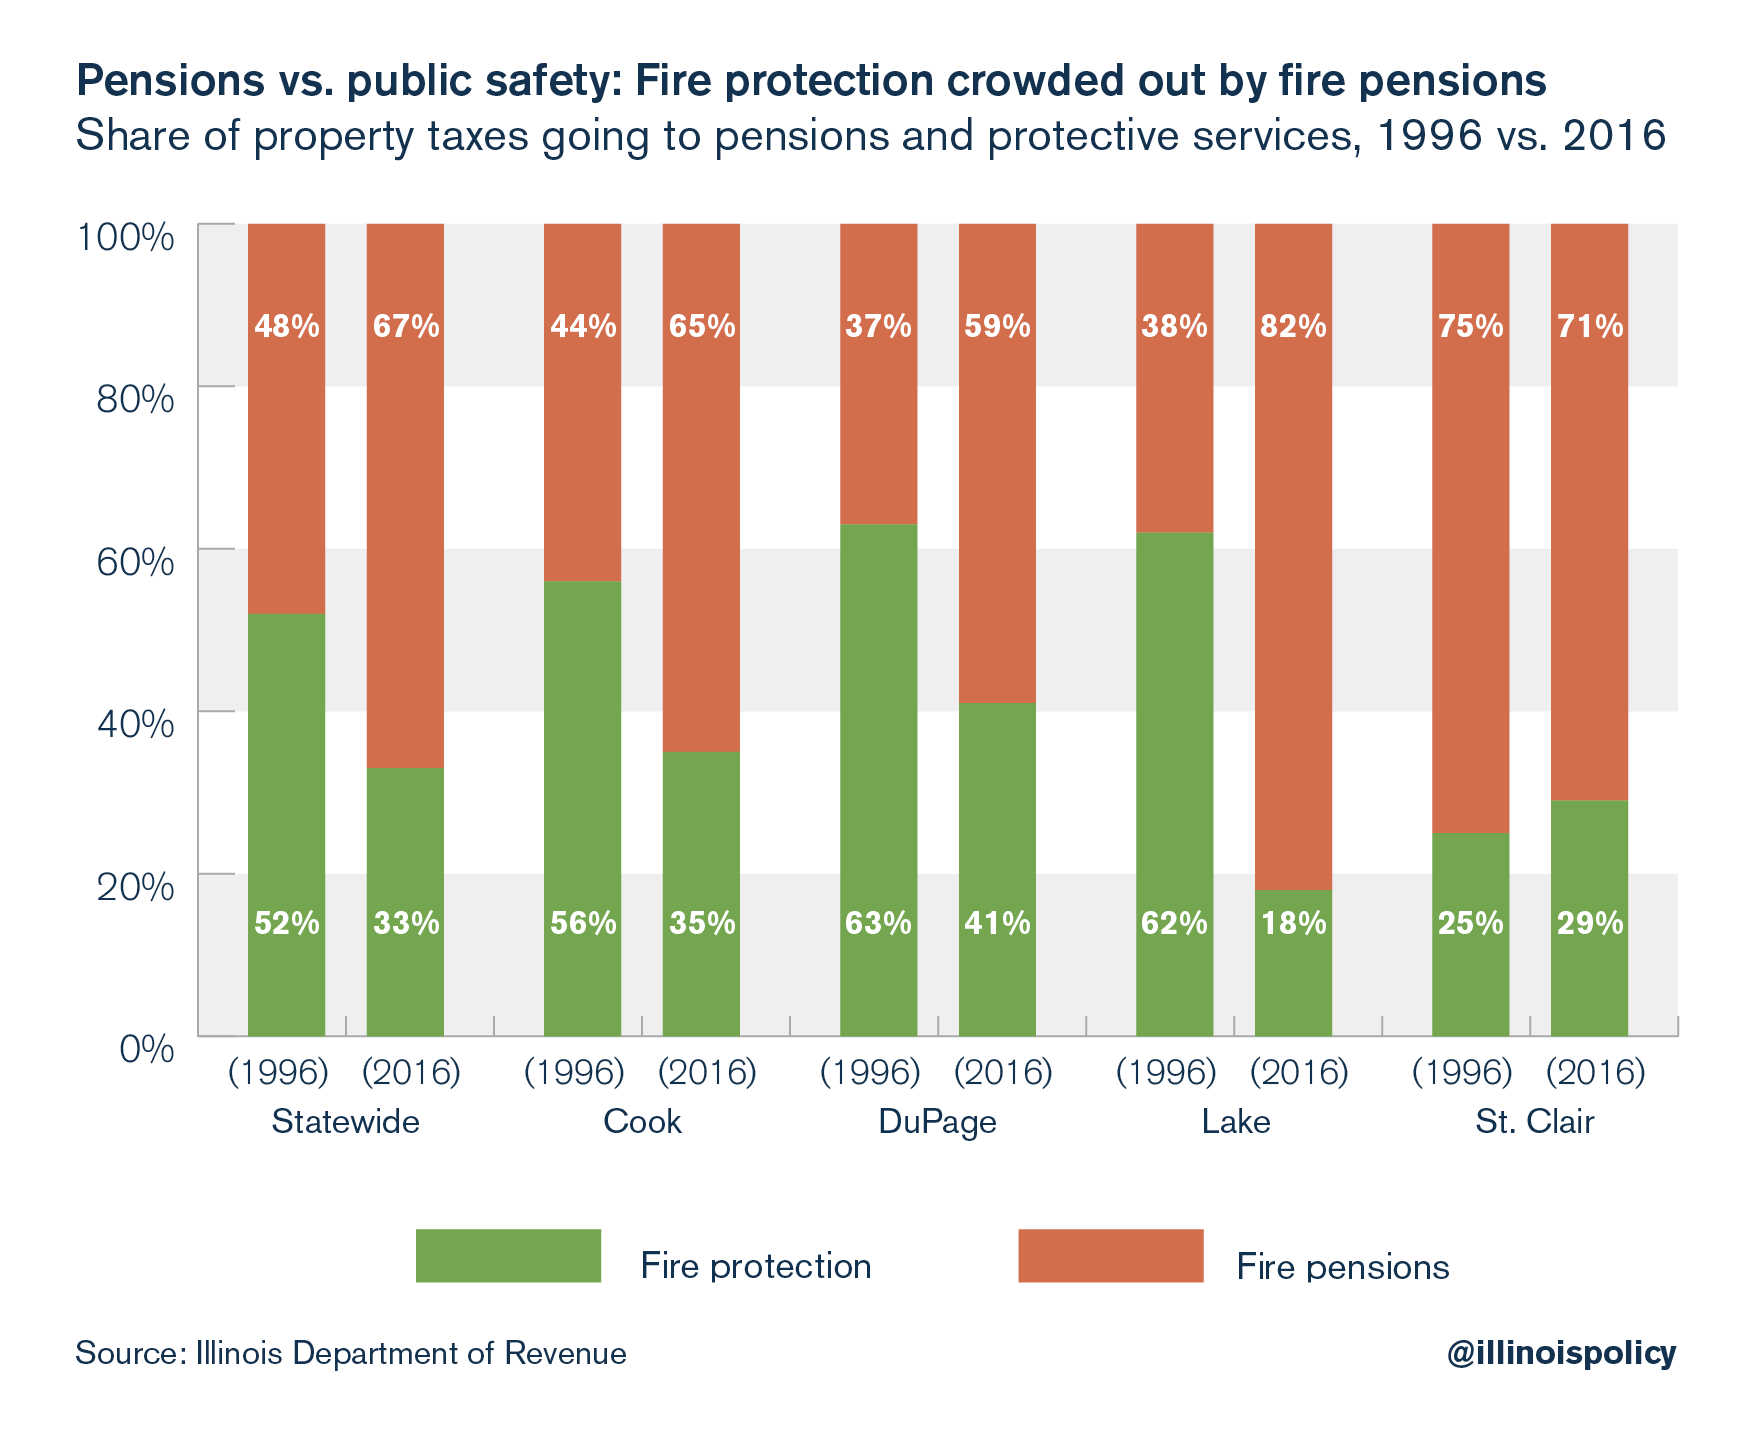 Pensions vs. public safety: Fire protection crowded out by fire pensions